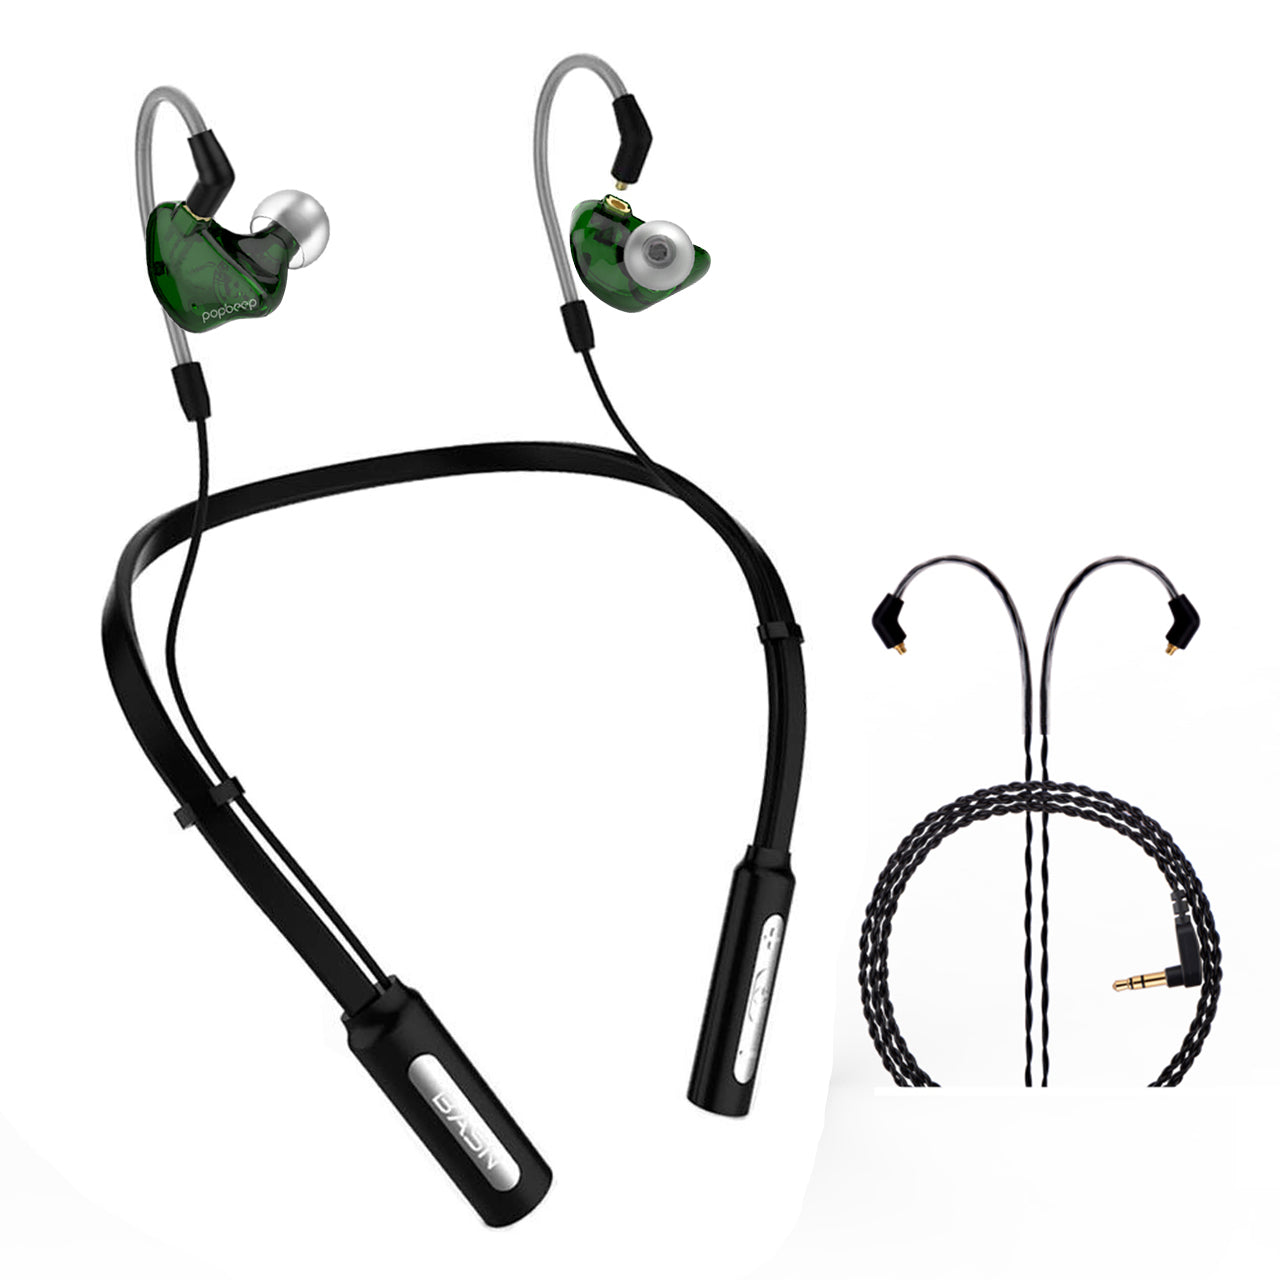 BASN 10H Playtime Bluetooth Headphones Wireless Headsets (Green)